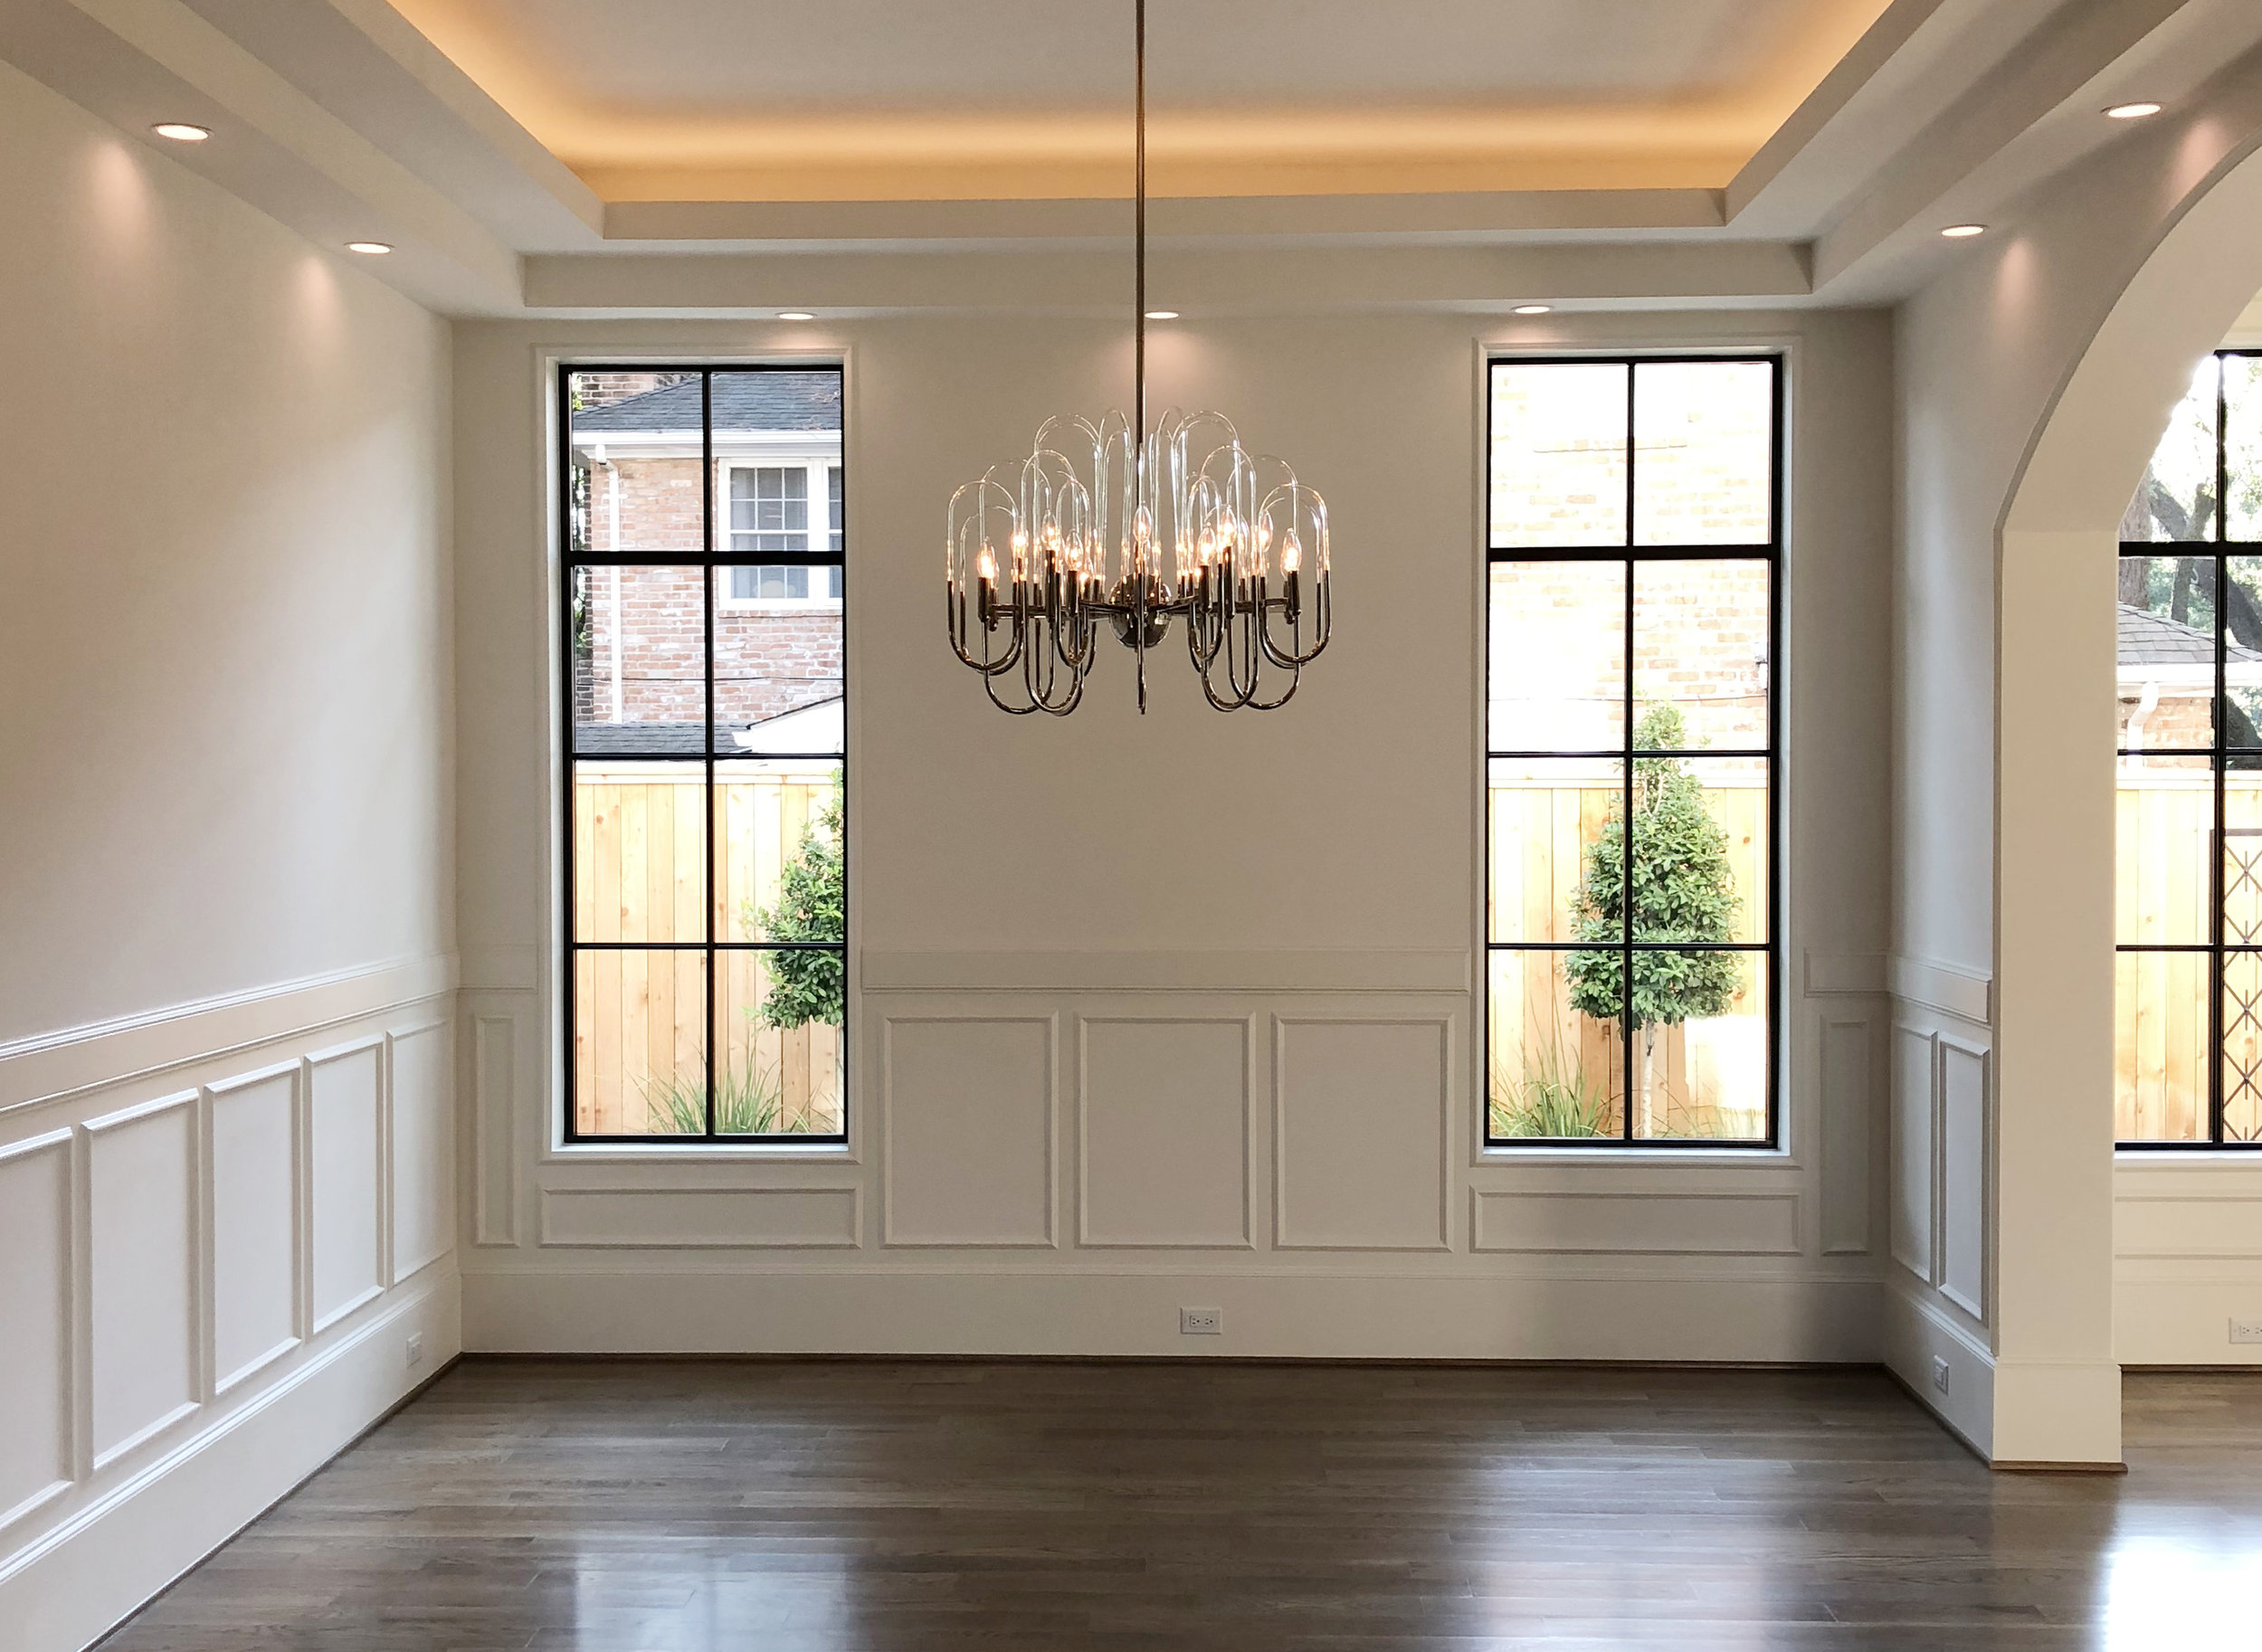 Classic moldings are highlighted by steel windows and the contemporary glass chandelier in the a dining room designed by Berlin based interior design firm Jamie House Design.